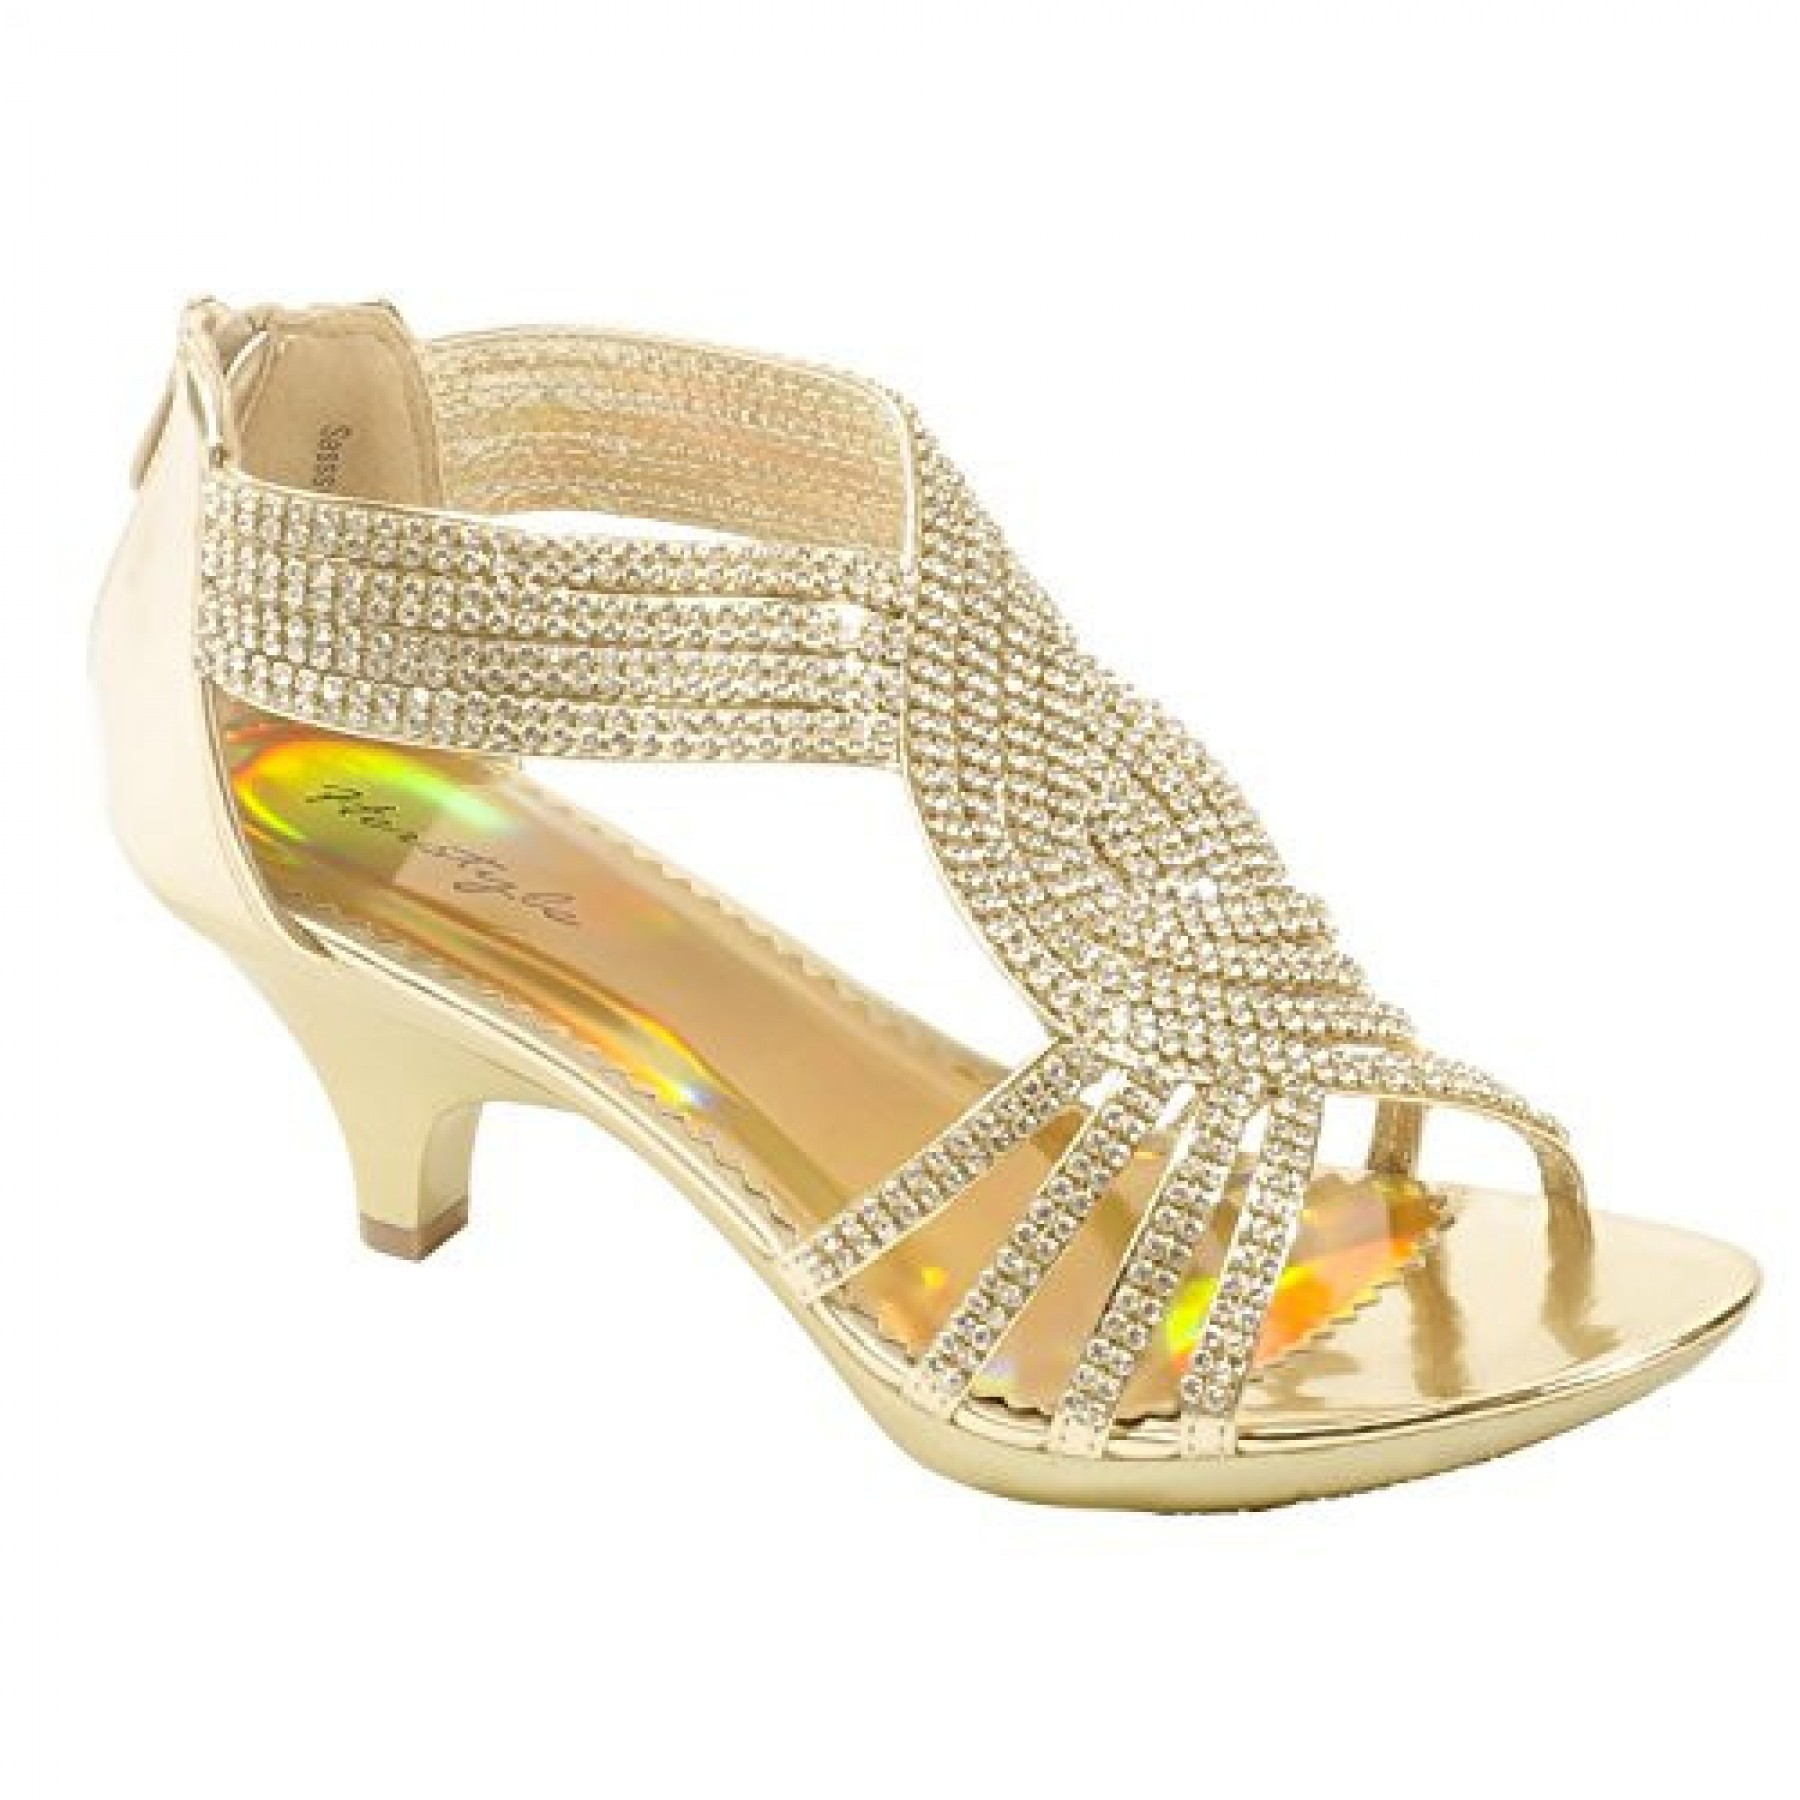 Women's Gold Manmade Sasssy Low Heeled Sandals with Rhinestone Enrobed Vamp